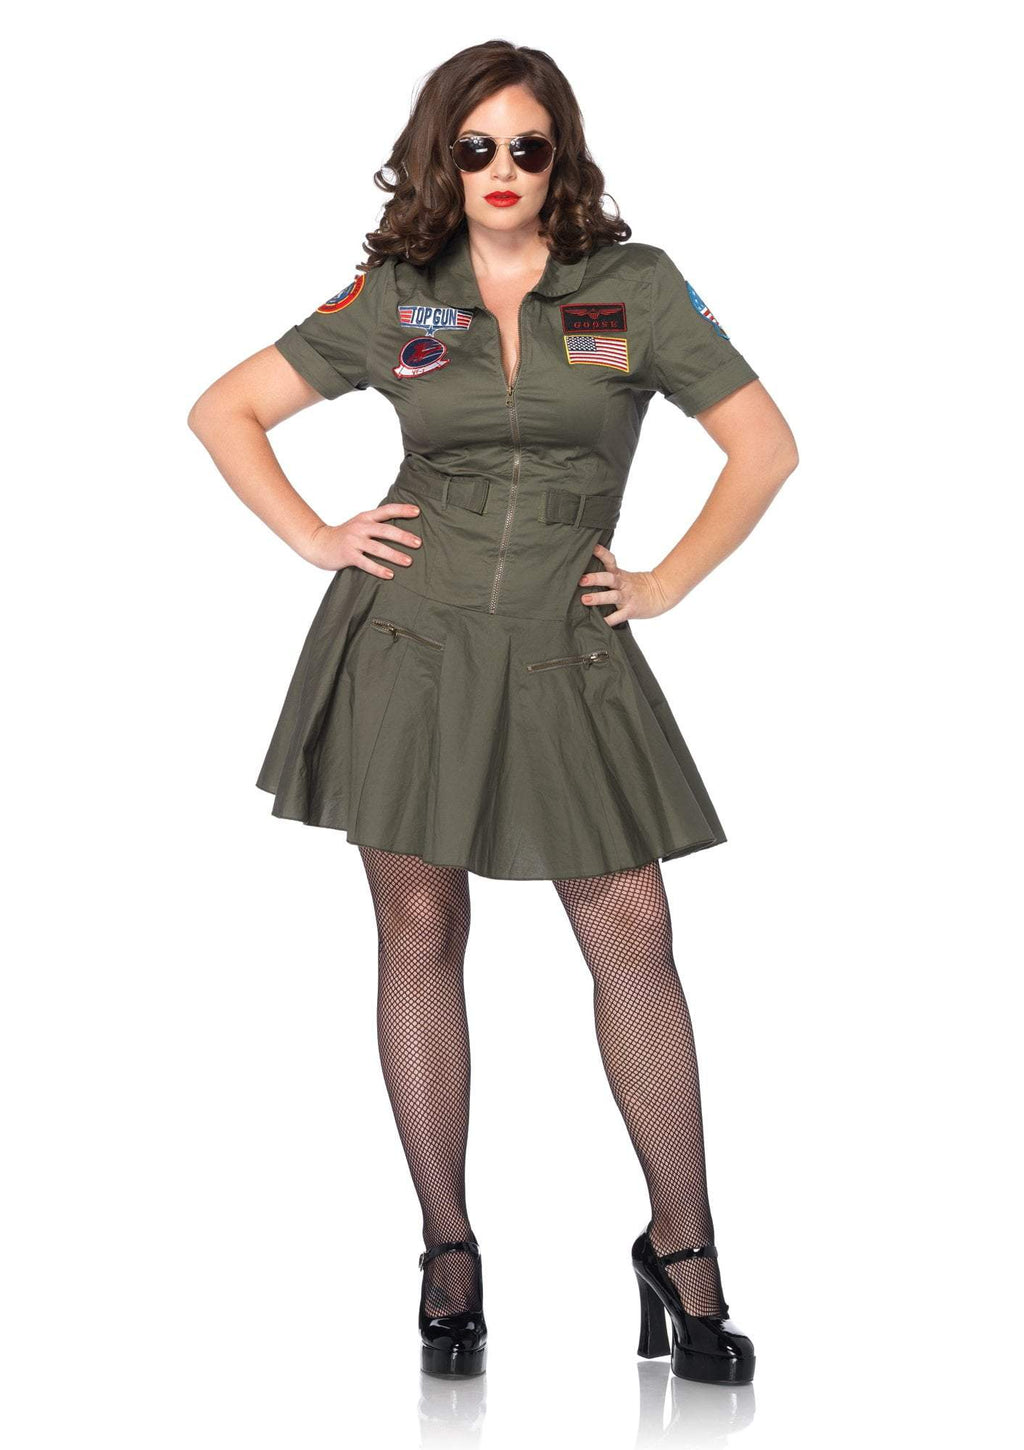 Leg Avenue Costumes 1X-2X Top Gun Flight Dress Plus Size Costume